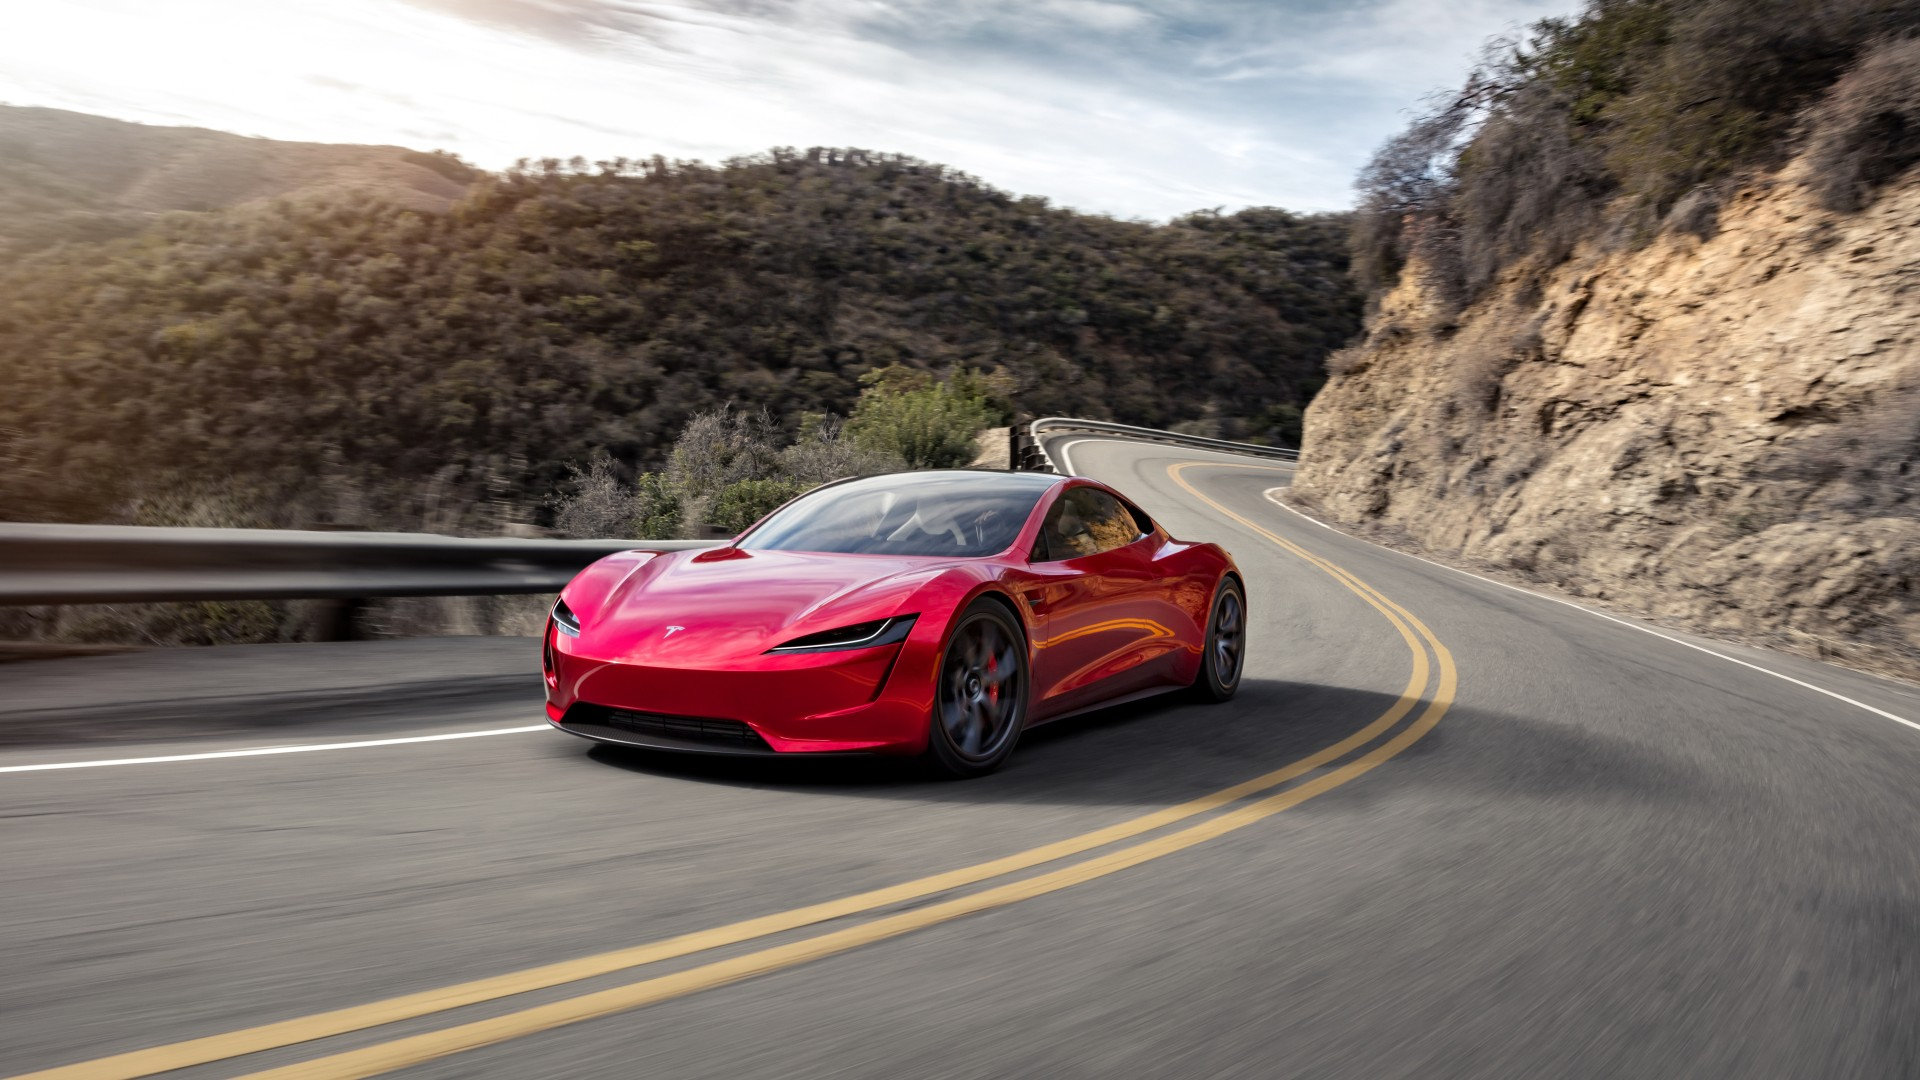 Tesla Roadster K X on Tesla Electric Car Design